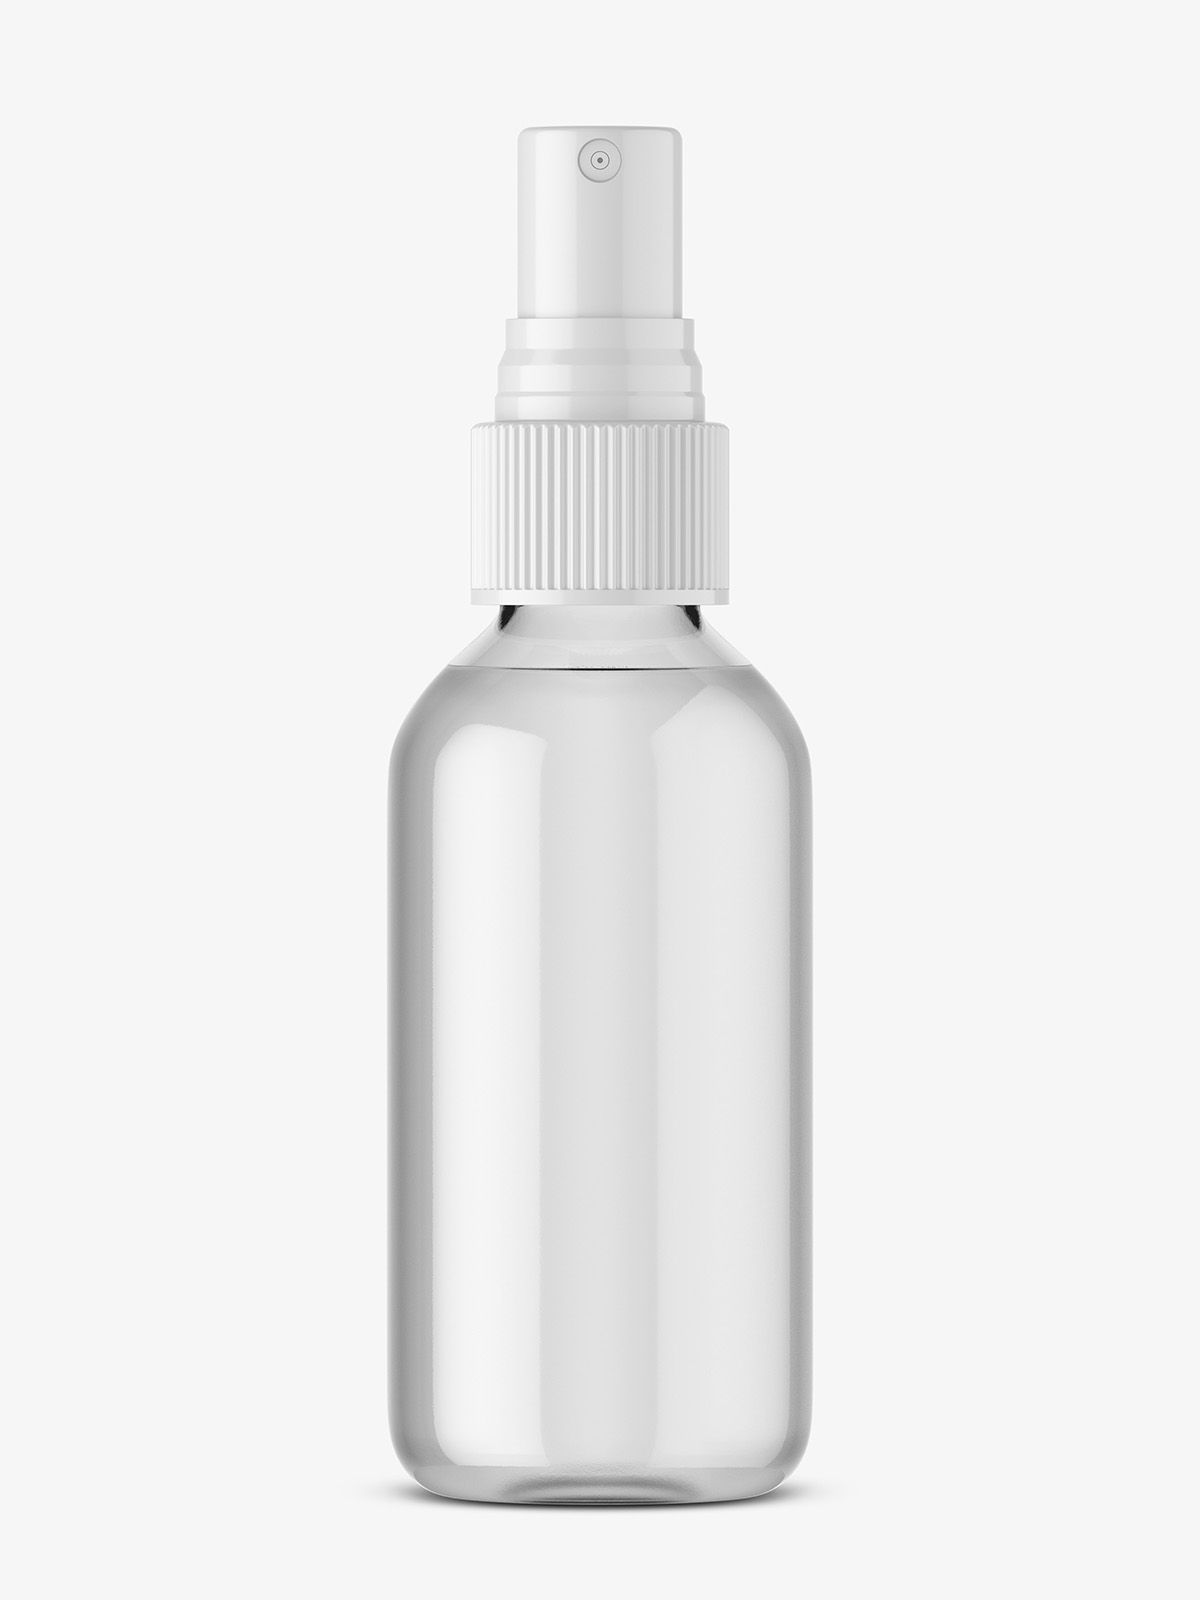 Glass Spray Bottle Mockup Bottle Mockup Glass Spray Bottle